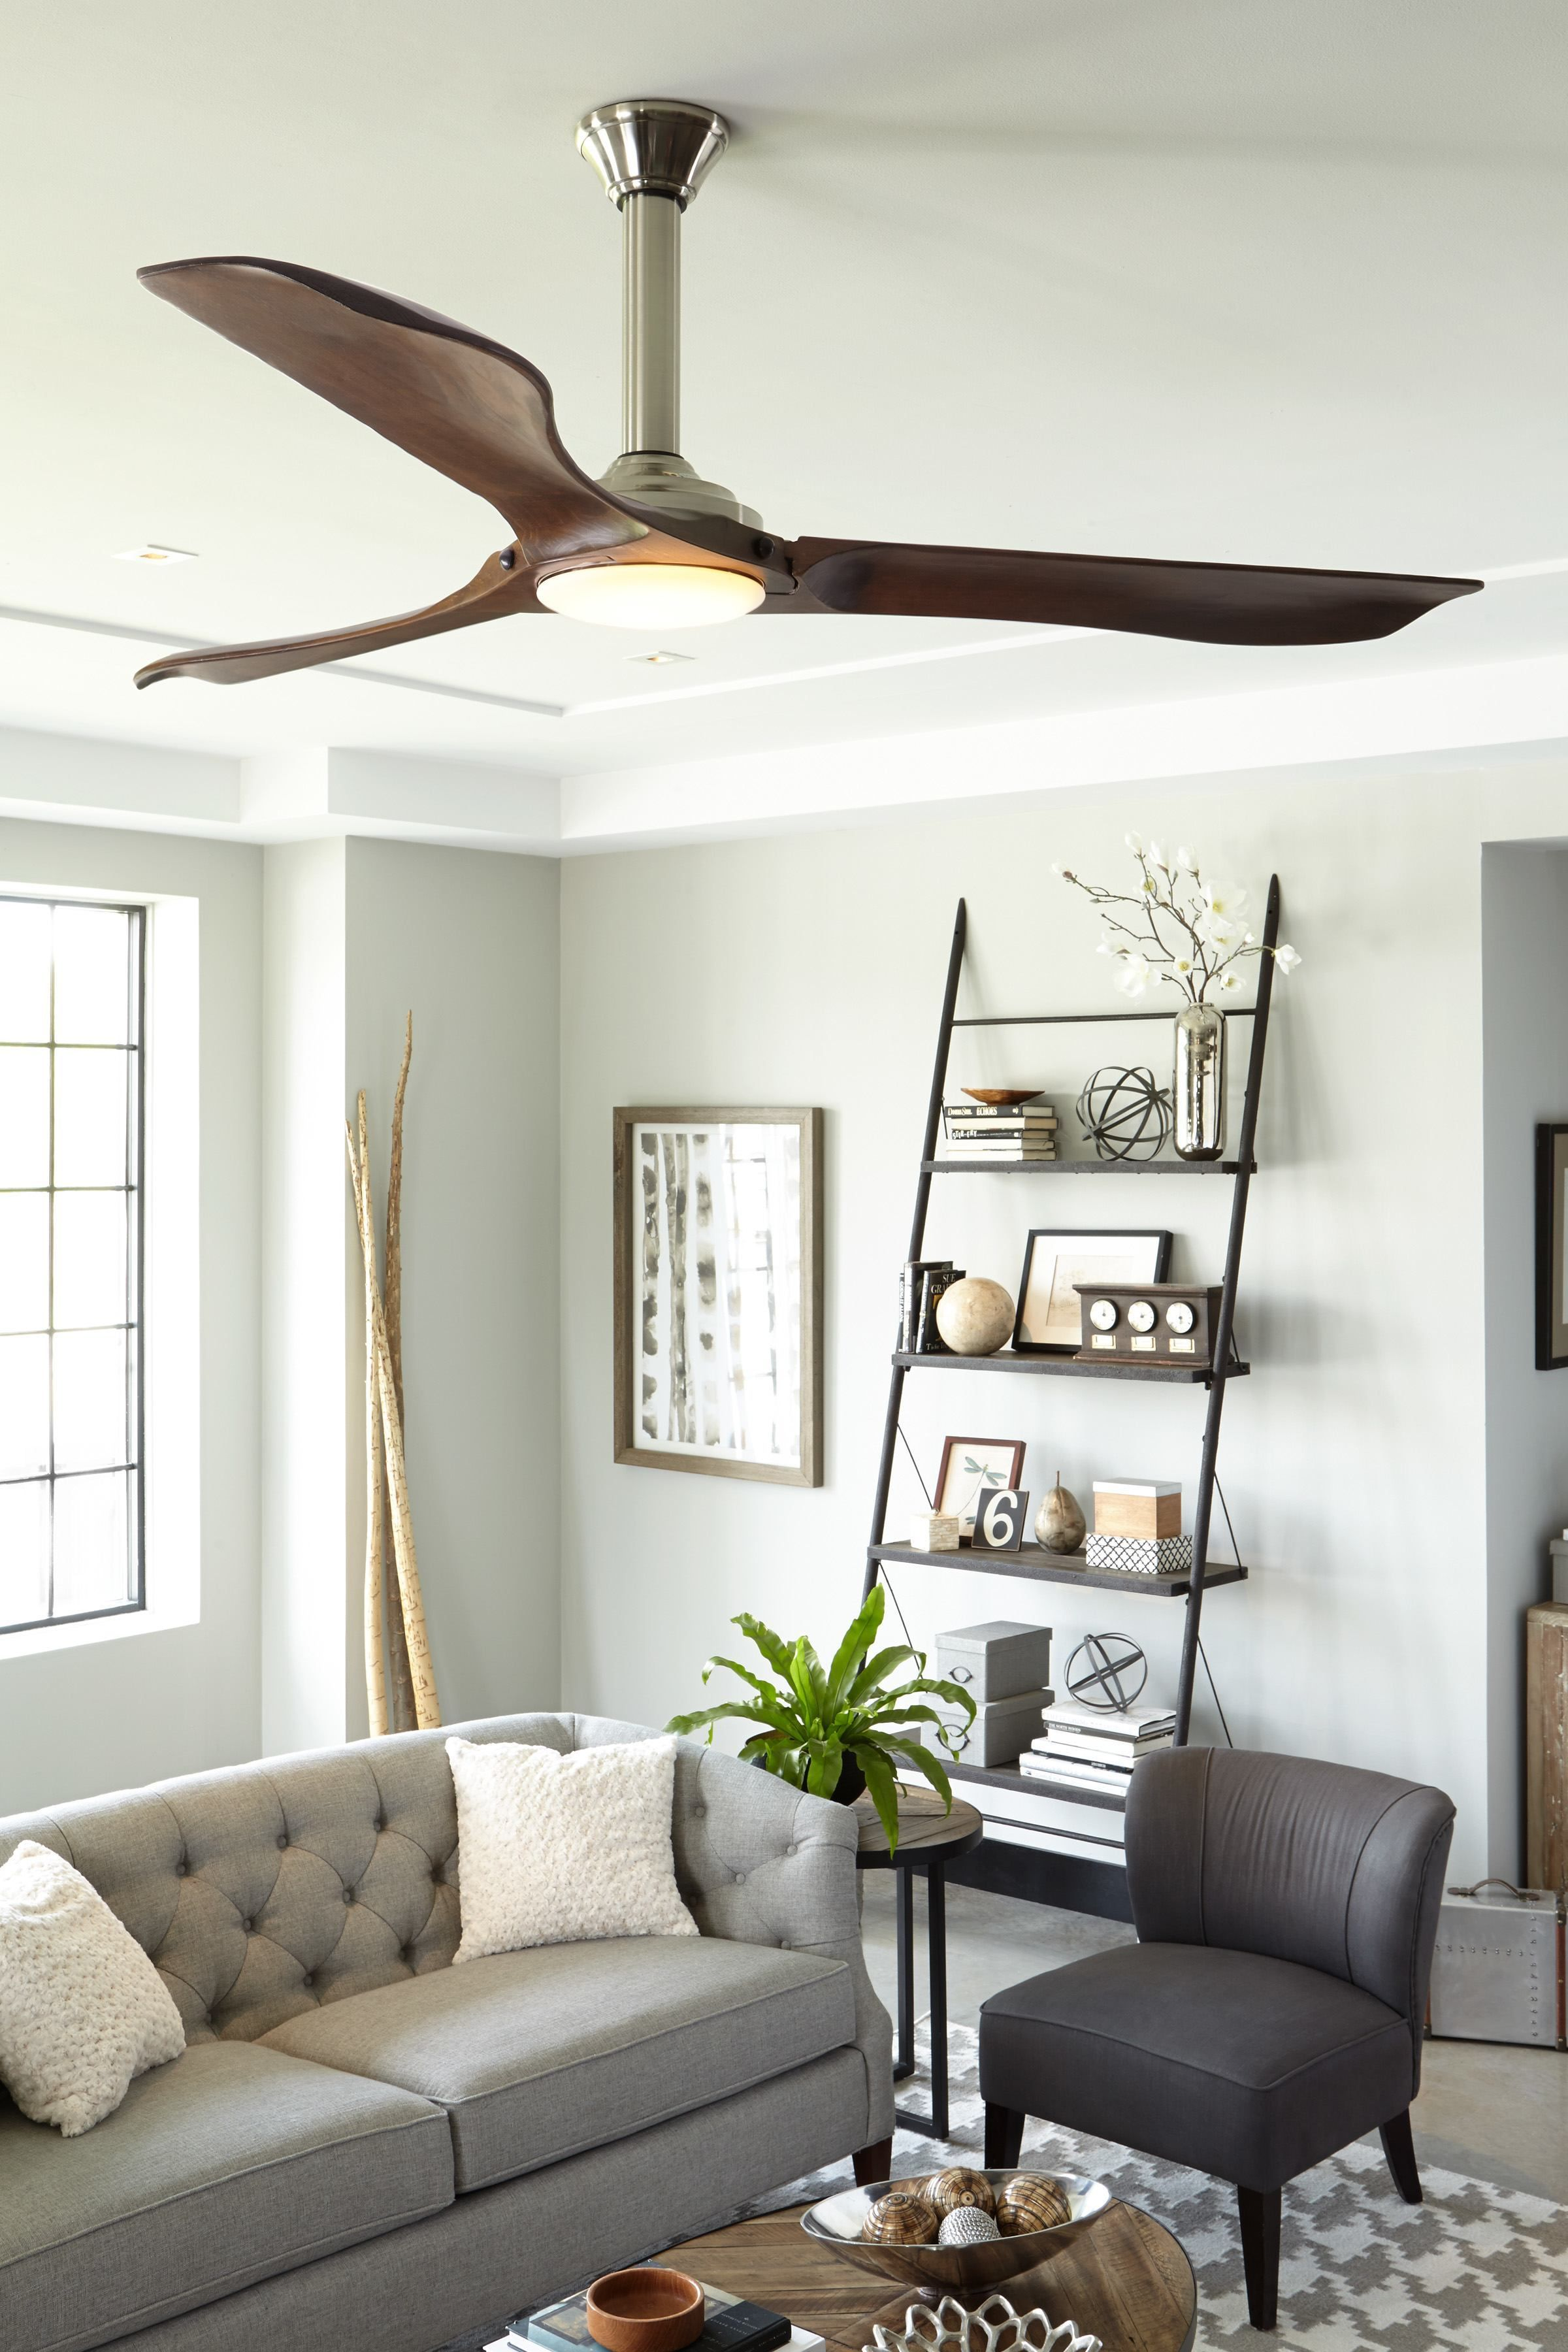 How to choose a ceiling fan ceiling fan ceilings and advice how to choose a ceiling fan aloadofball Images